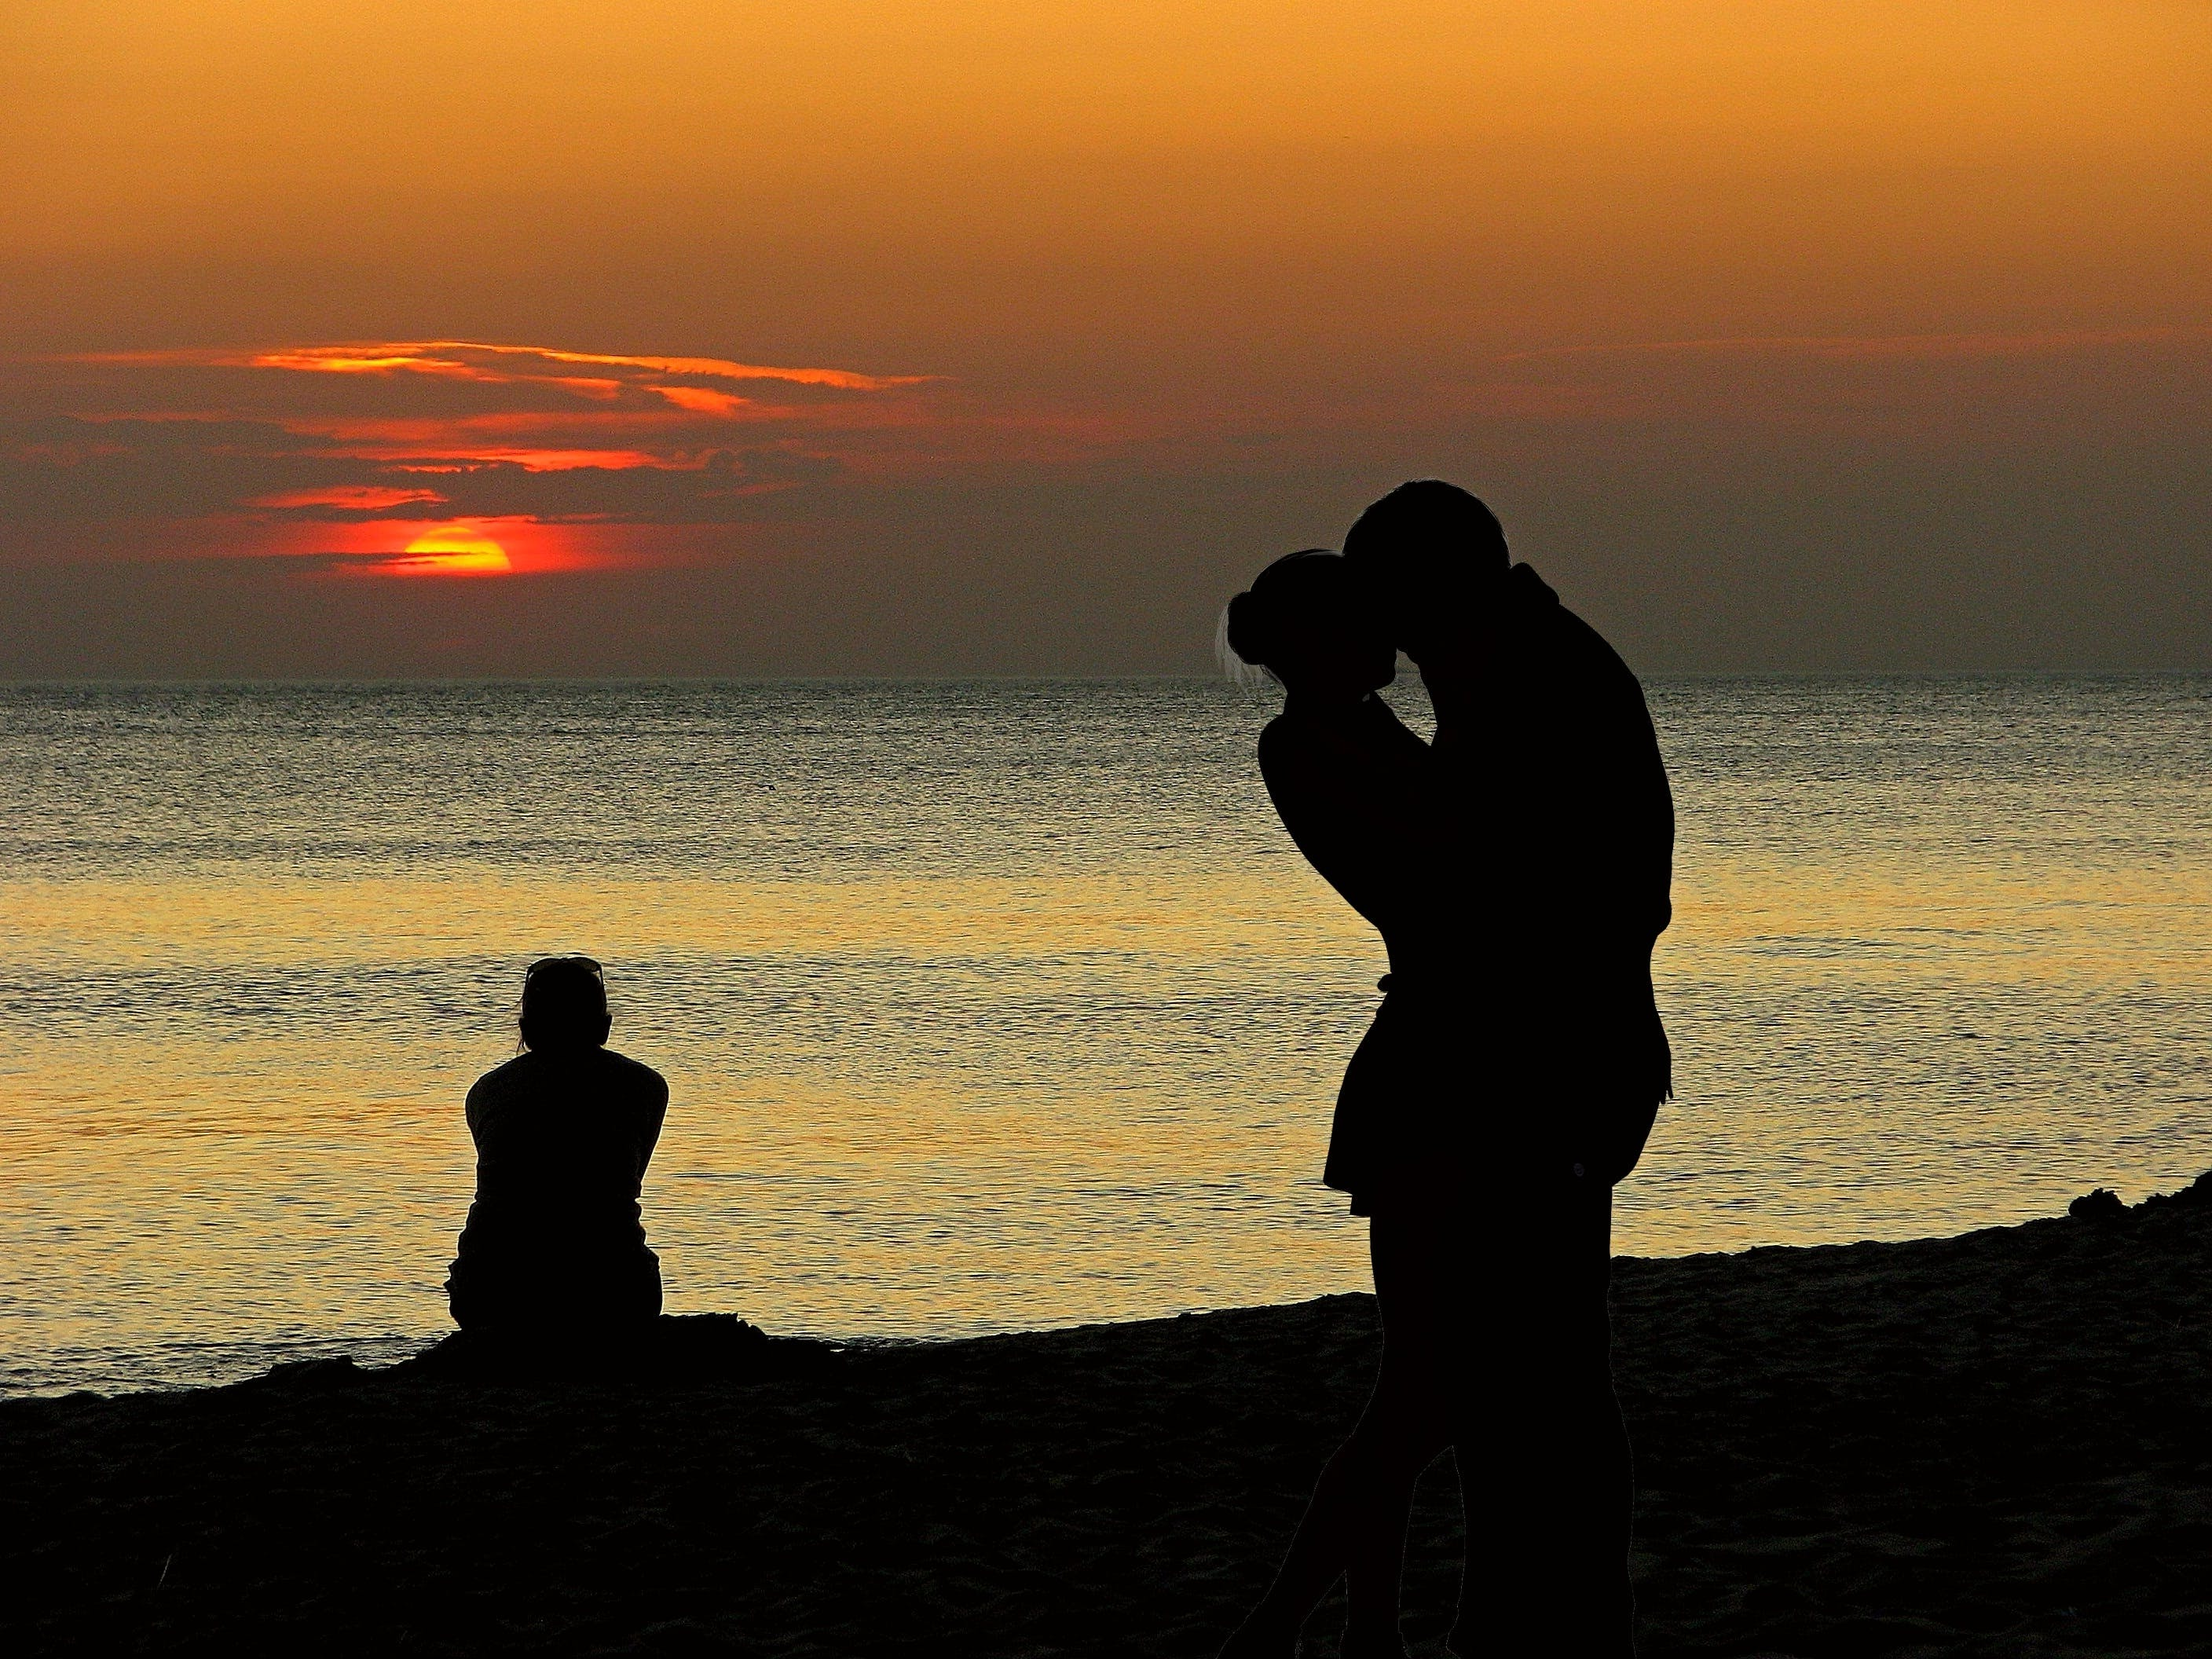 Silhouette Photography of Couple About to Kiss Near on Body of Water